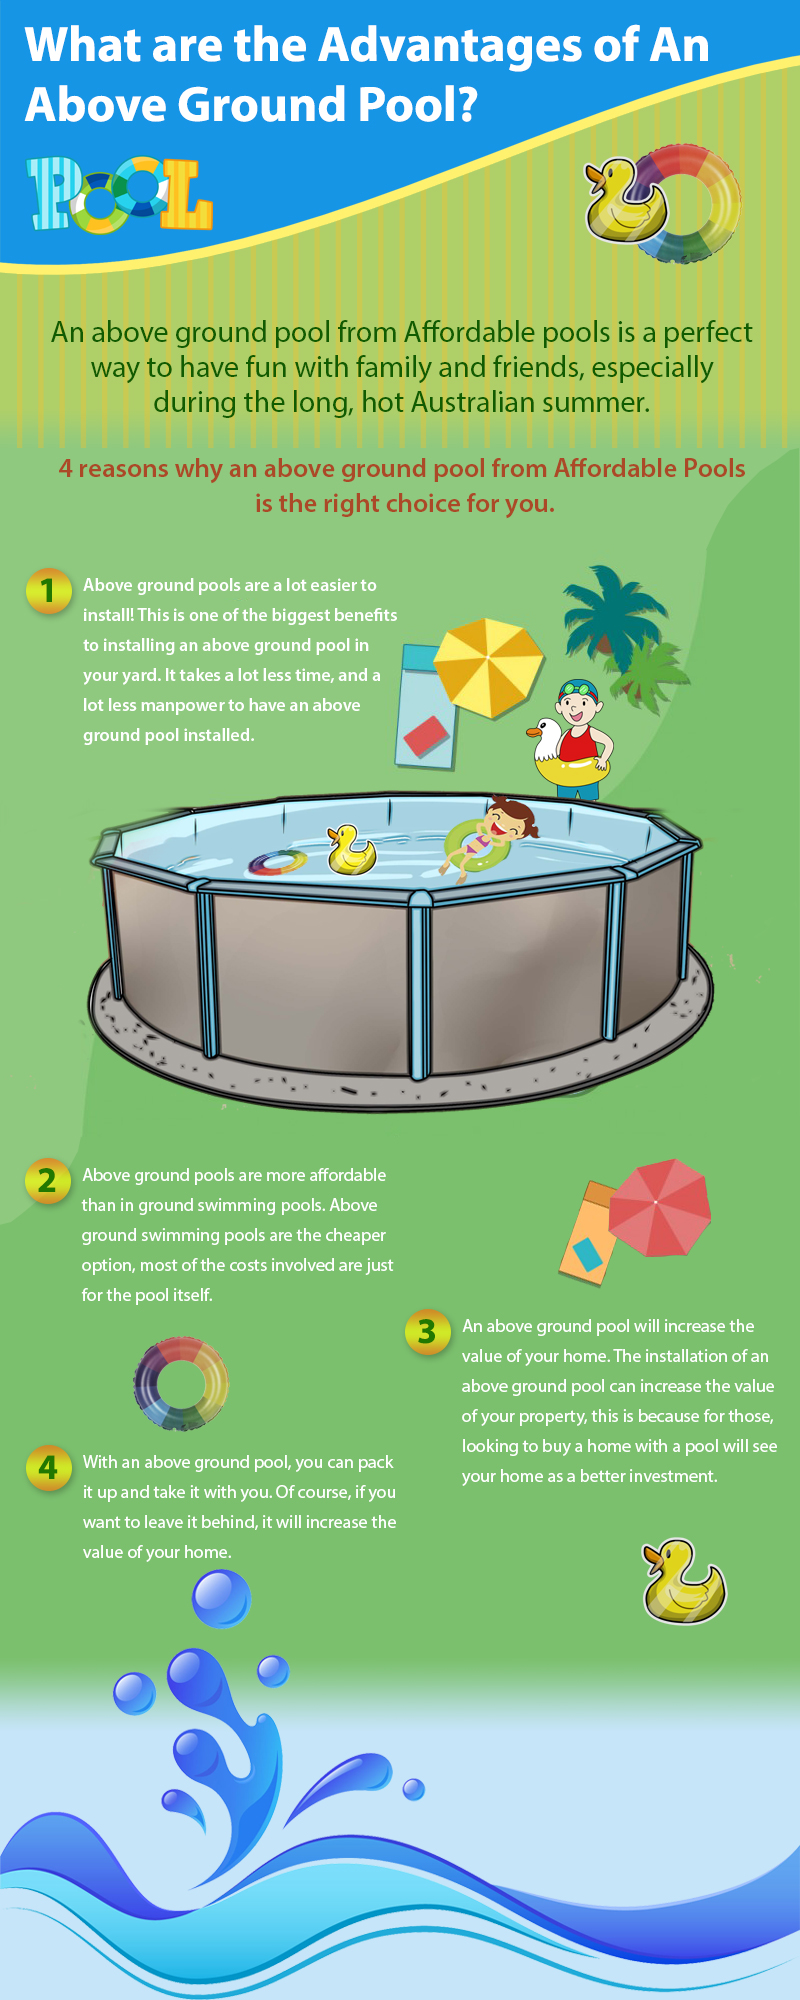 What are the Advantages of An Above Ground Pool